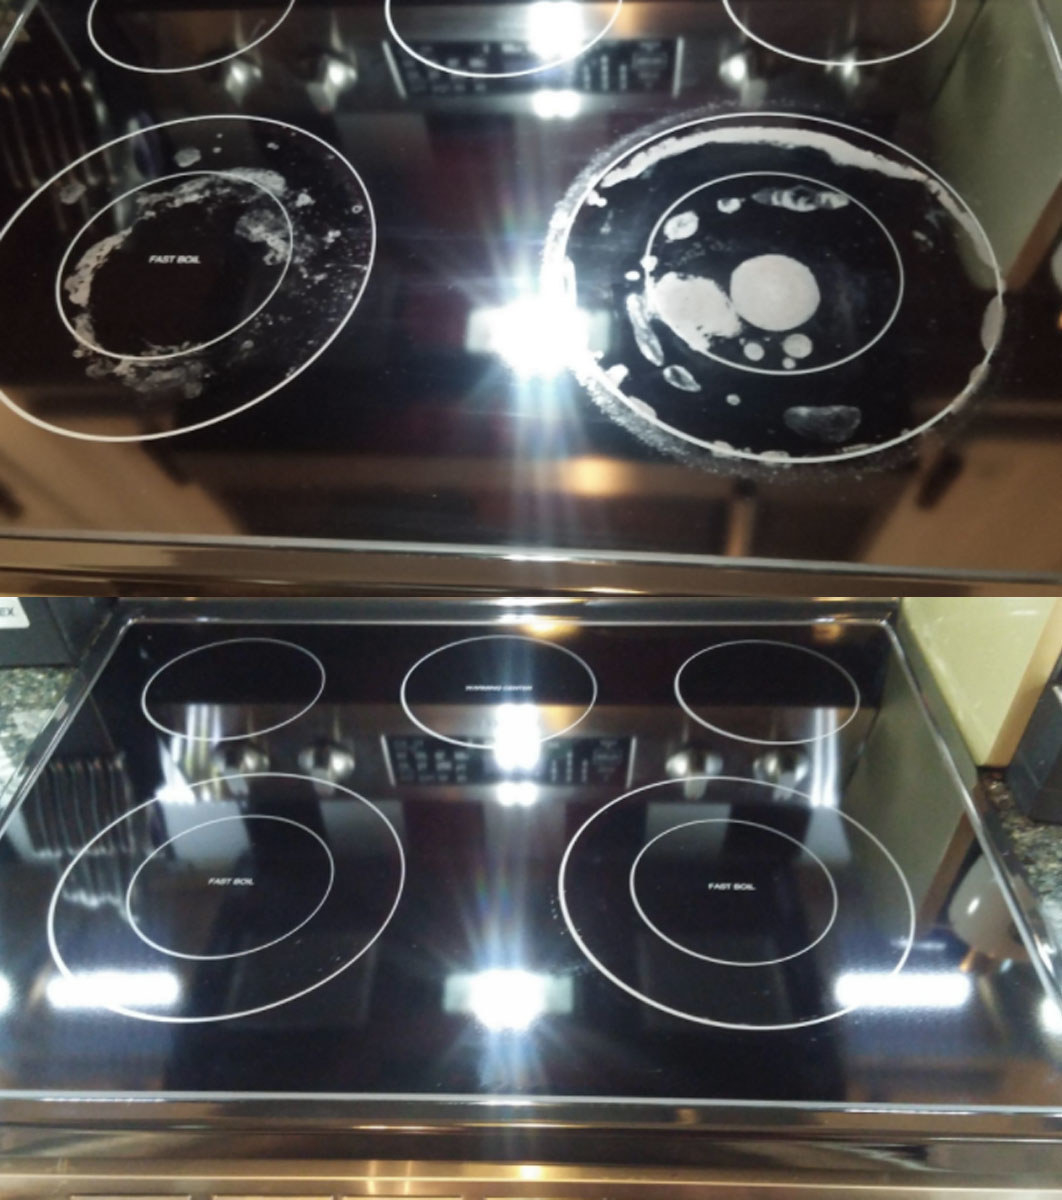 The before and after of a stove top treated with the product showing it is now clean